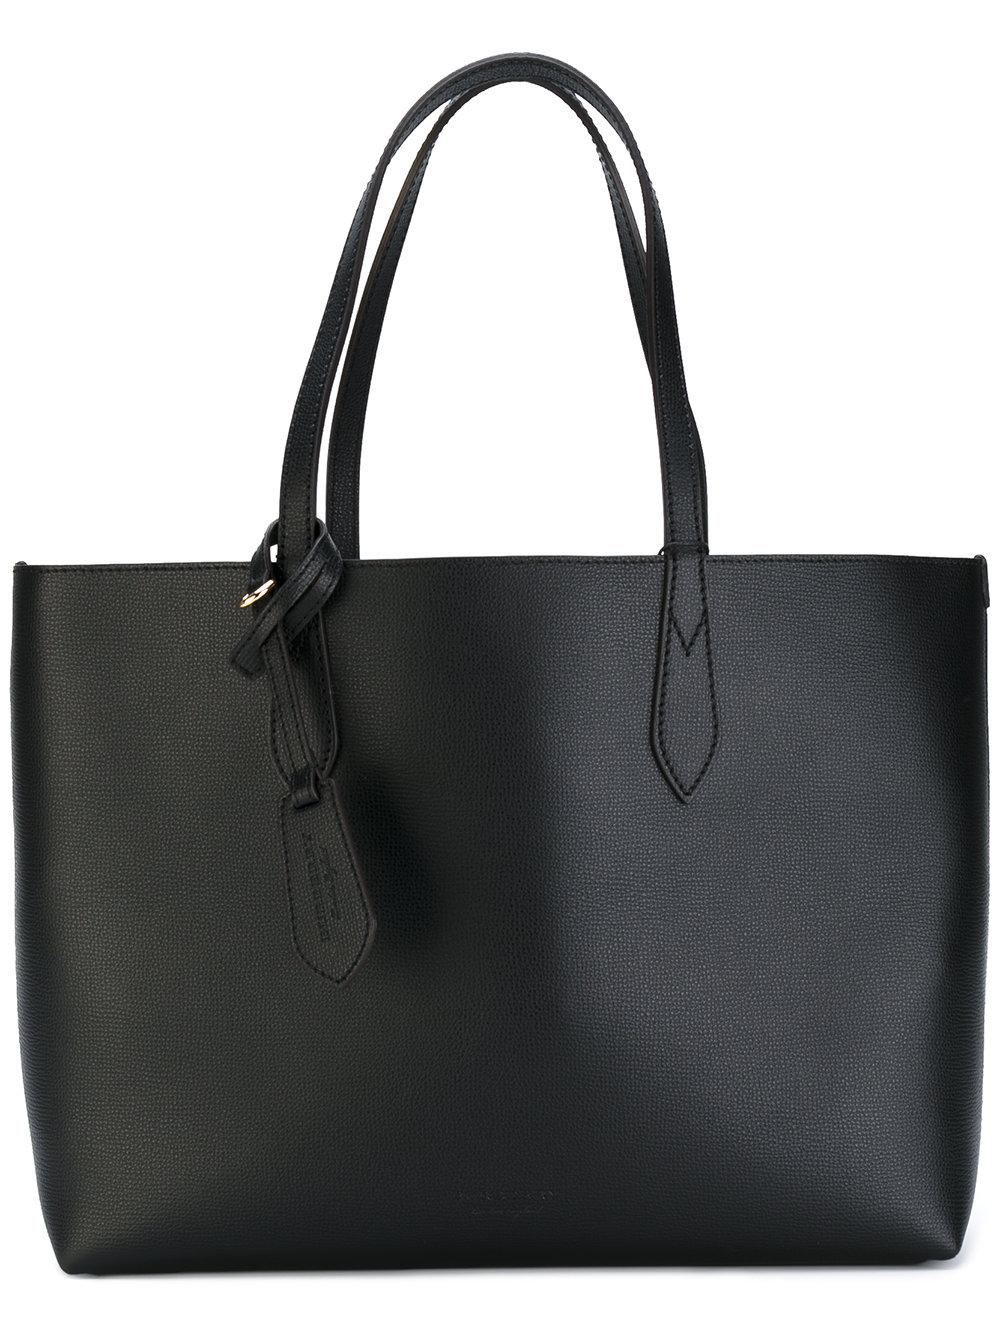 Burberry The Medium Reversible Tote In Haymarket Check And Leather In Black